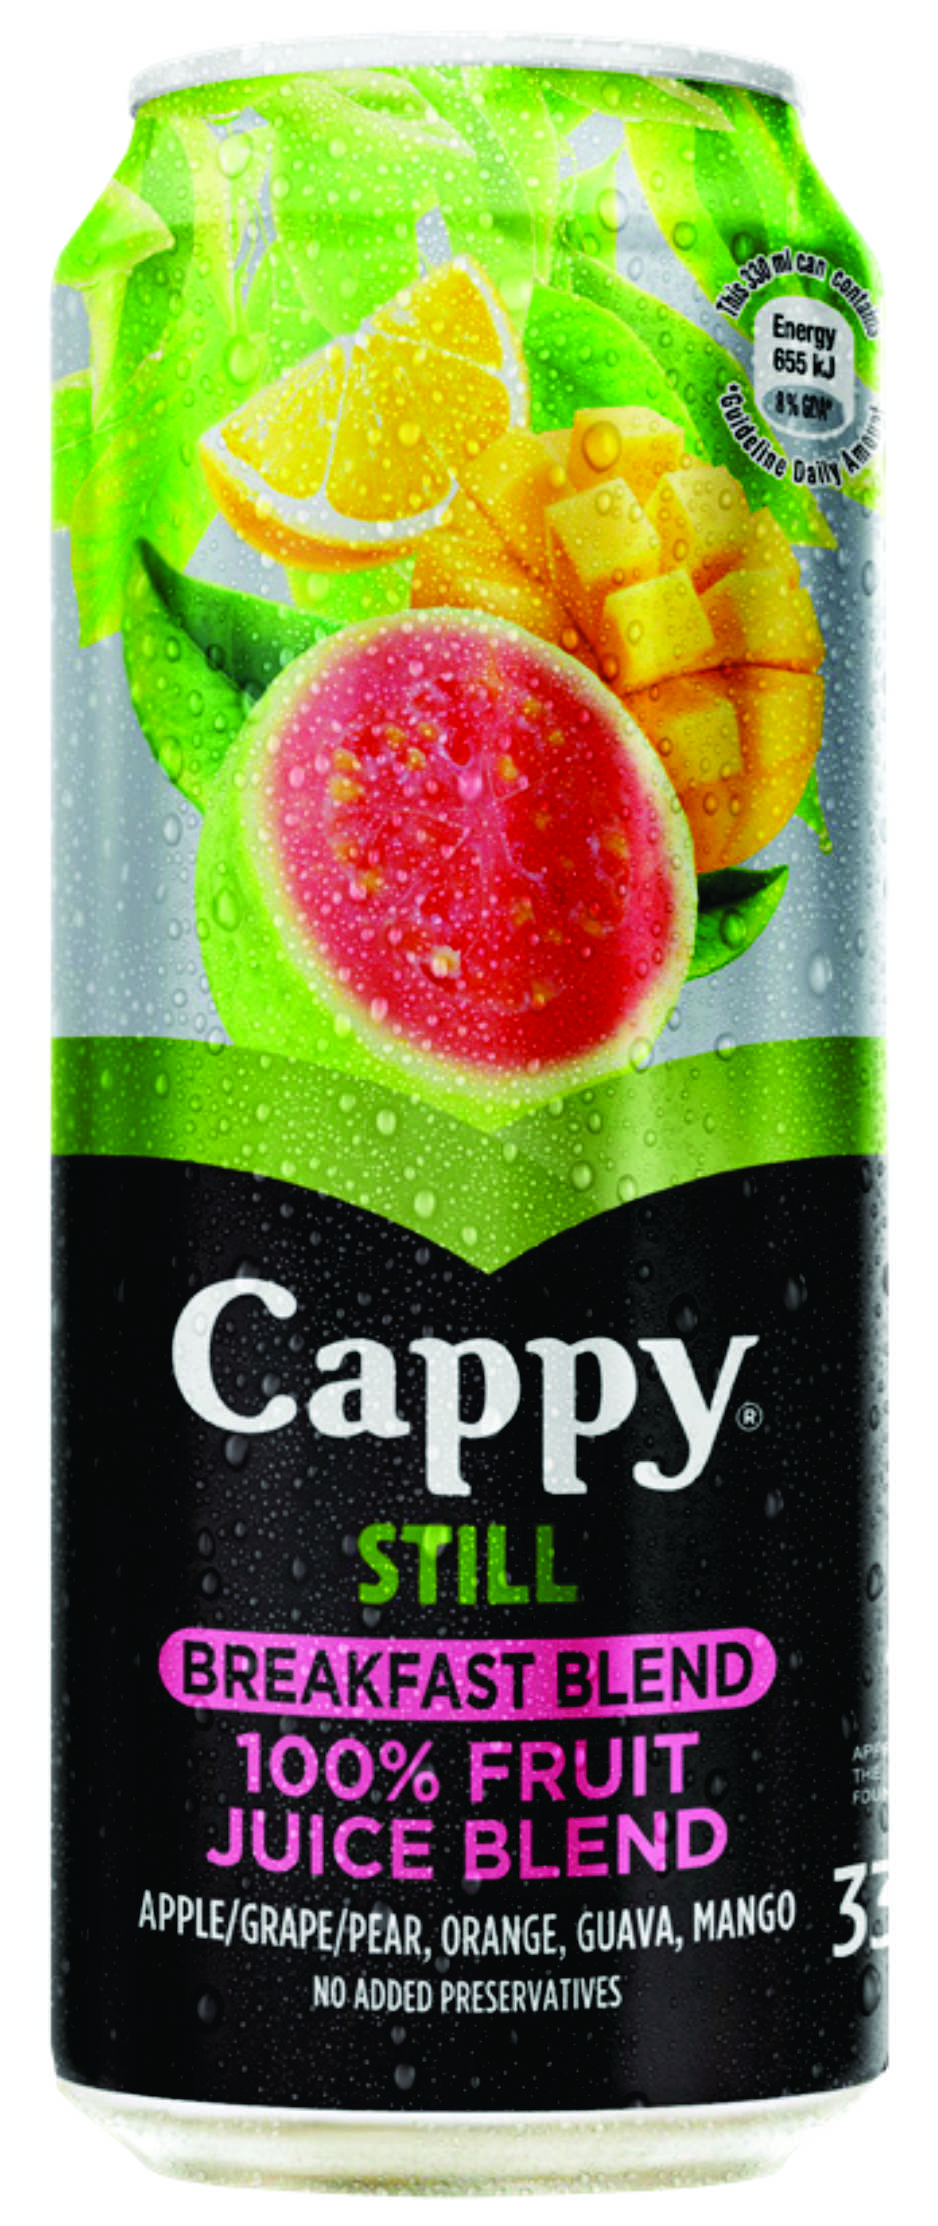 Cappy Breakfast Blend